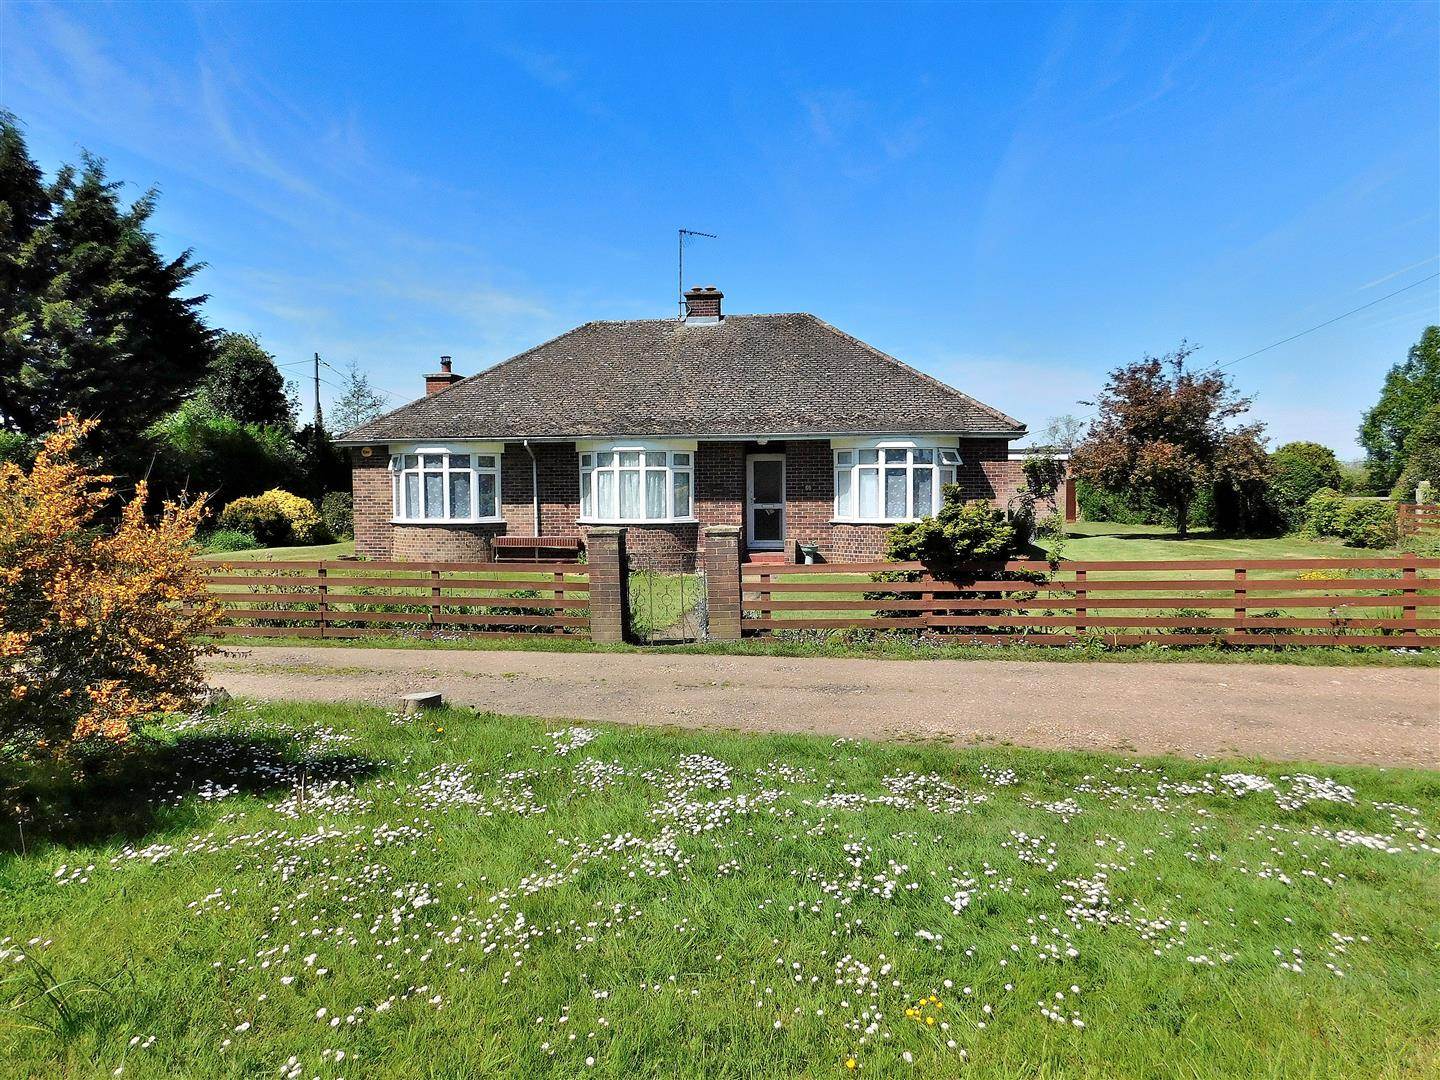 3 bed detached bungalow for sale in King's Lynn, PE33 0NB 0